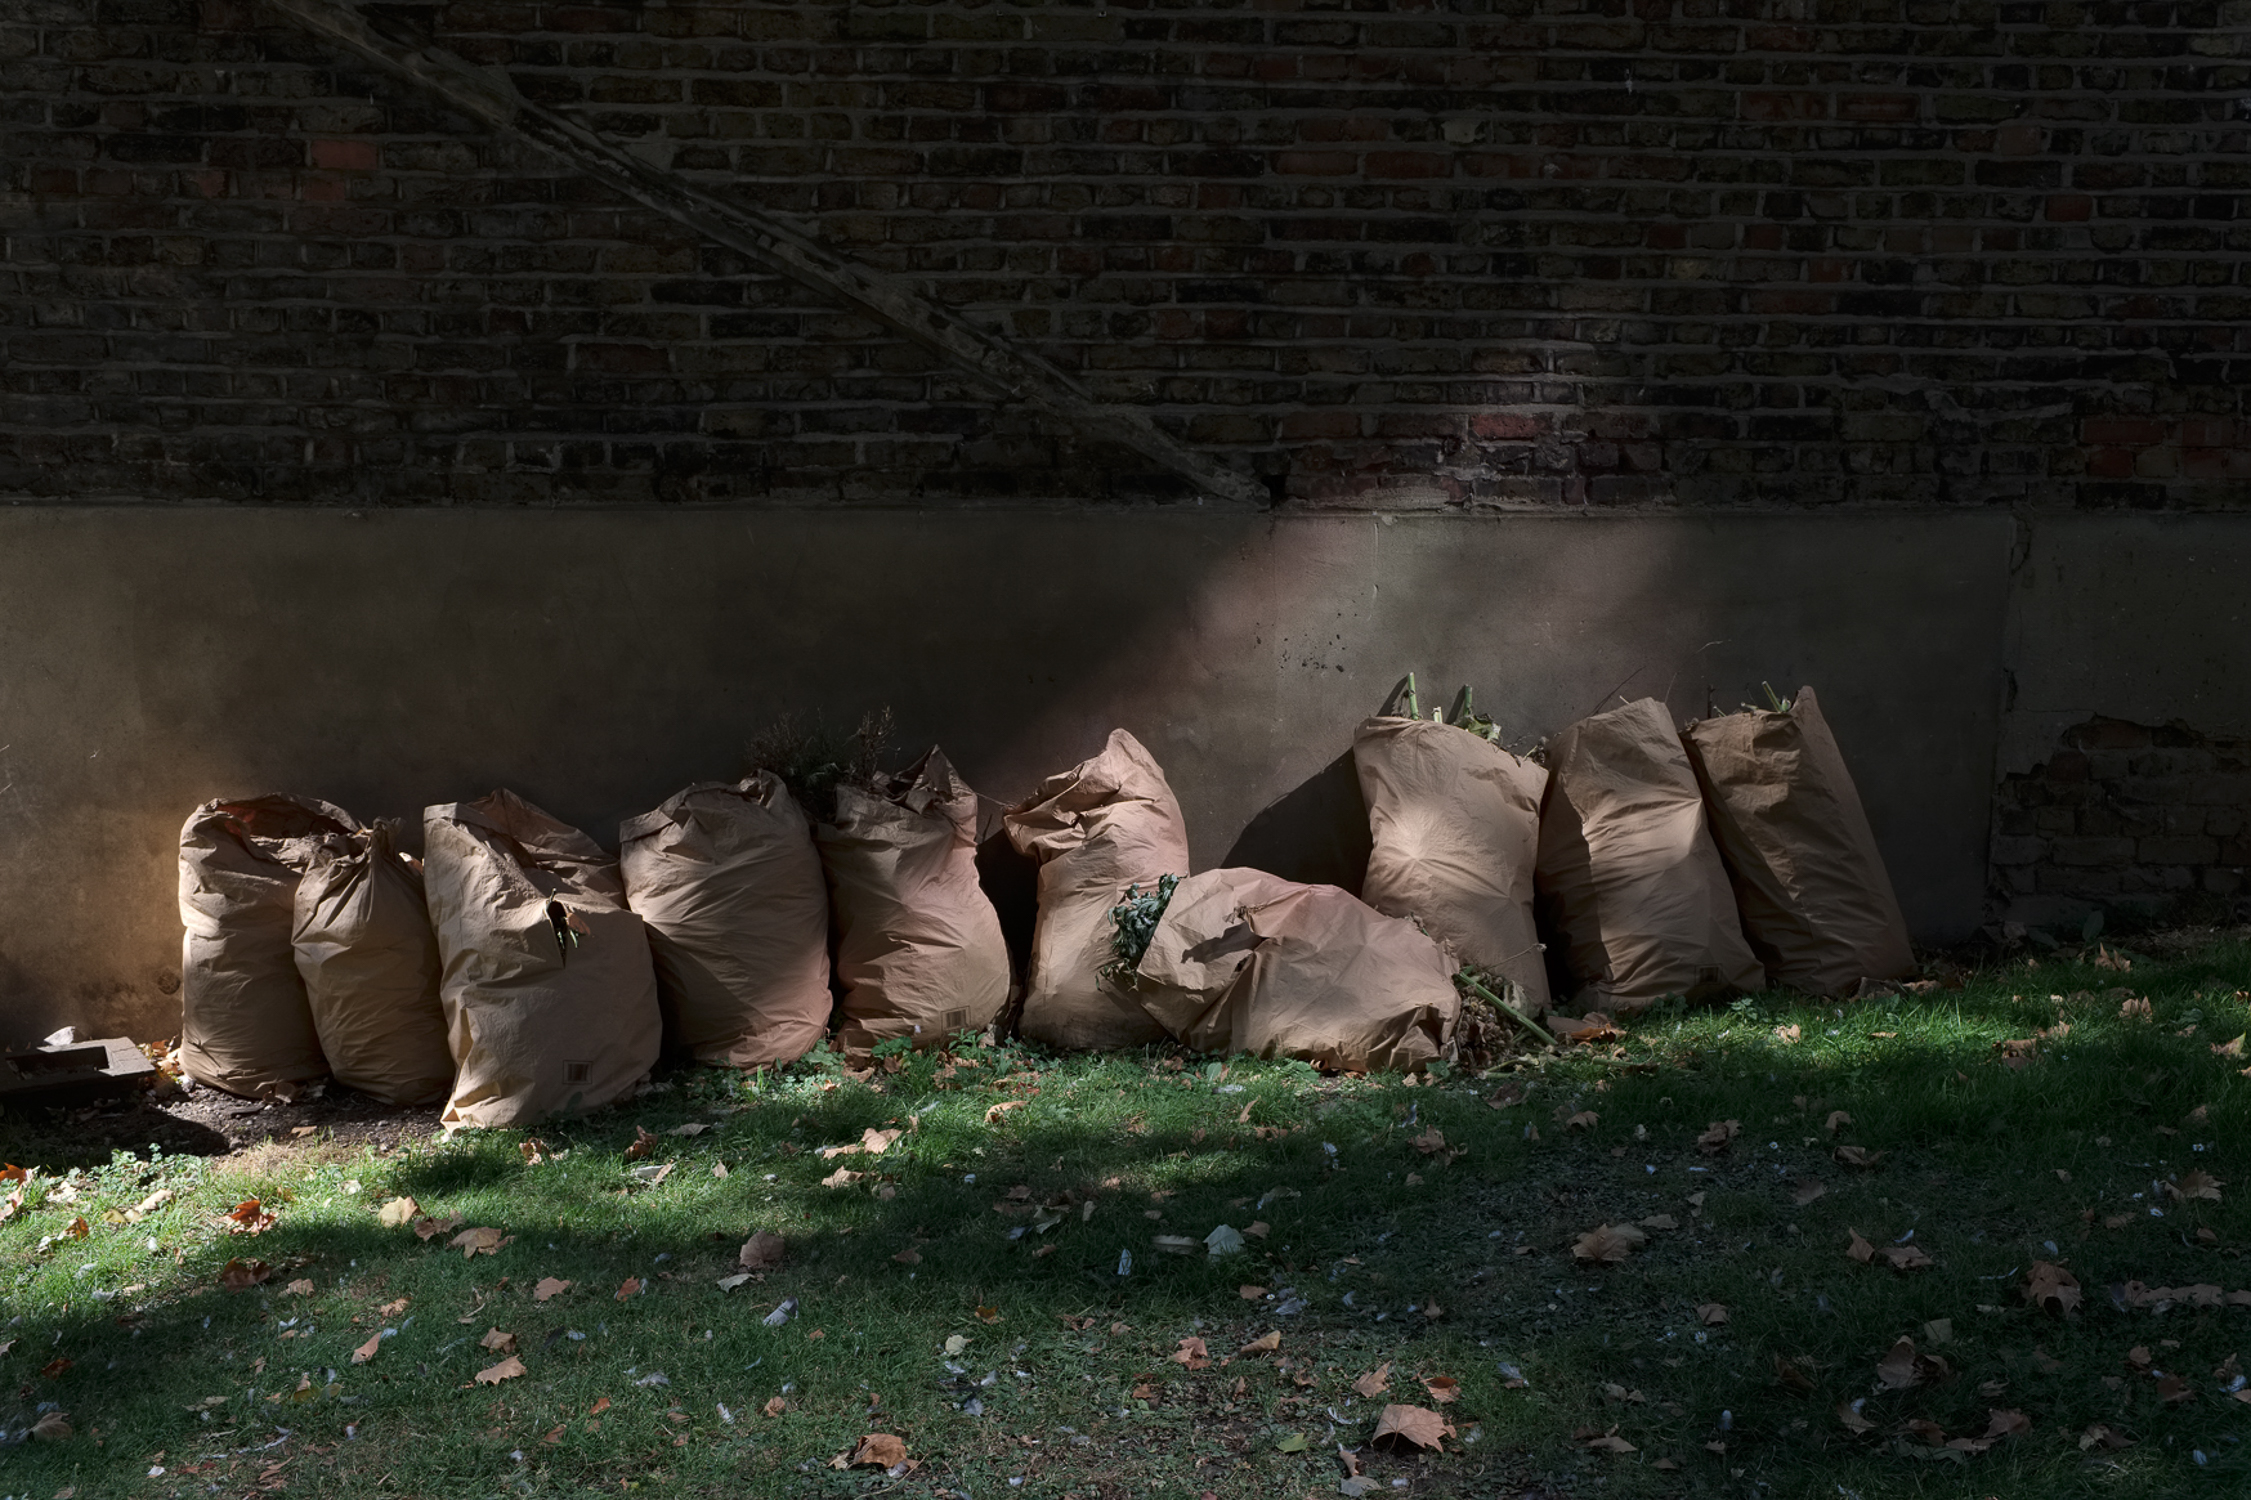 patches of light falling on a row of paperbags filled with garden waste leaning against a wall